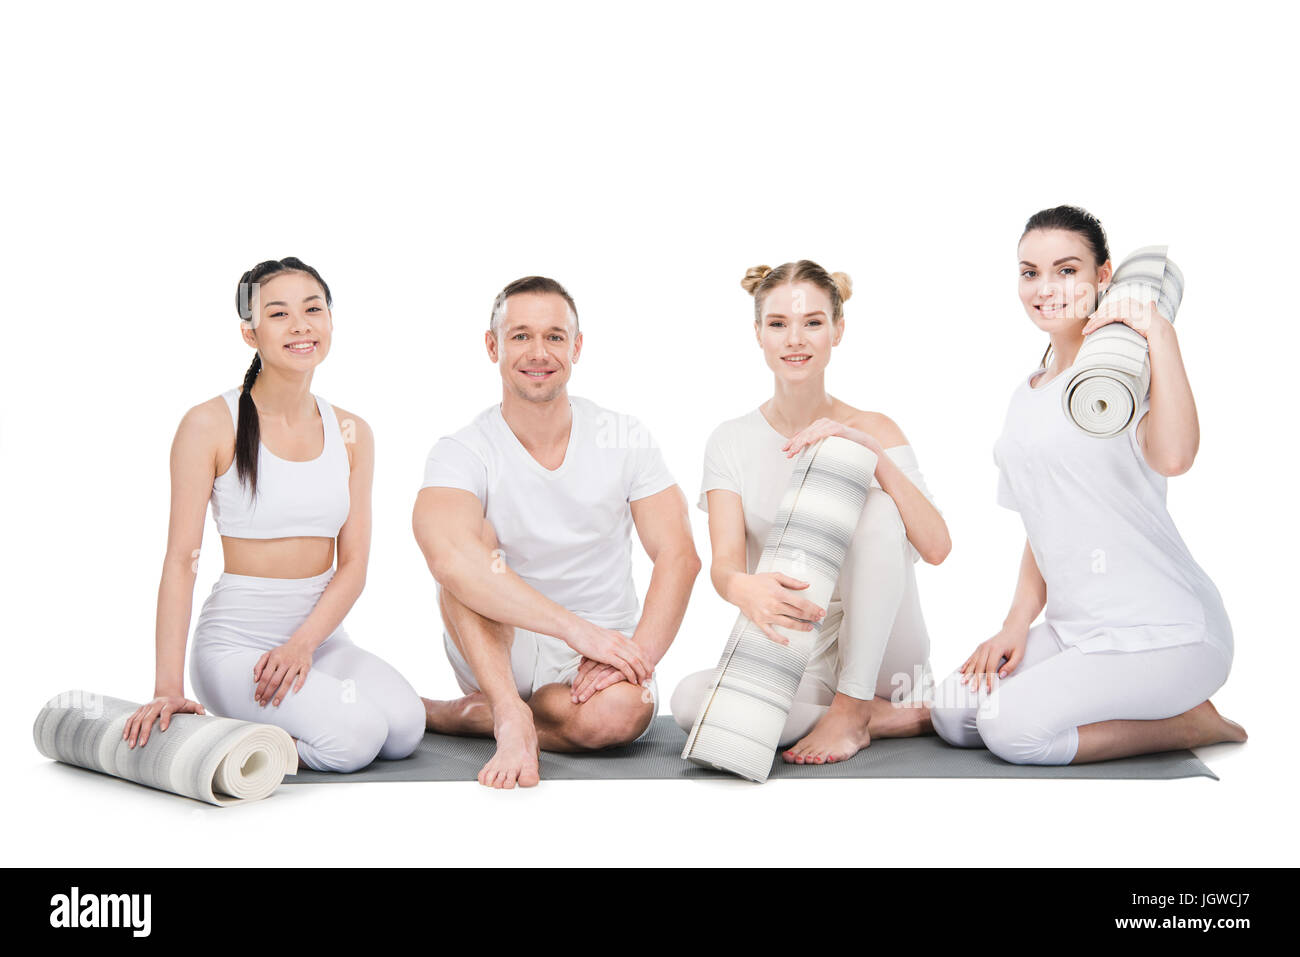 Group of smiling young women with trainer sitting together with yoga mats isolated on white - Stock Image